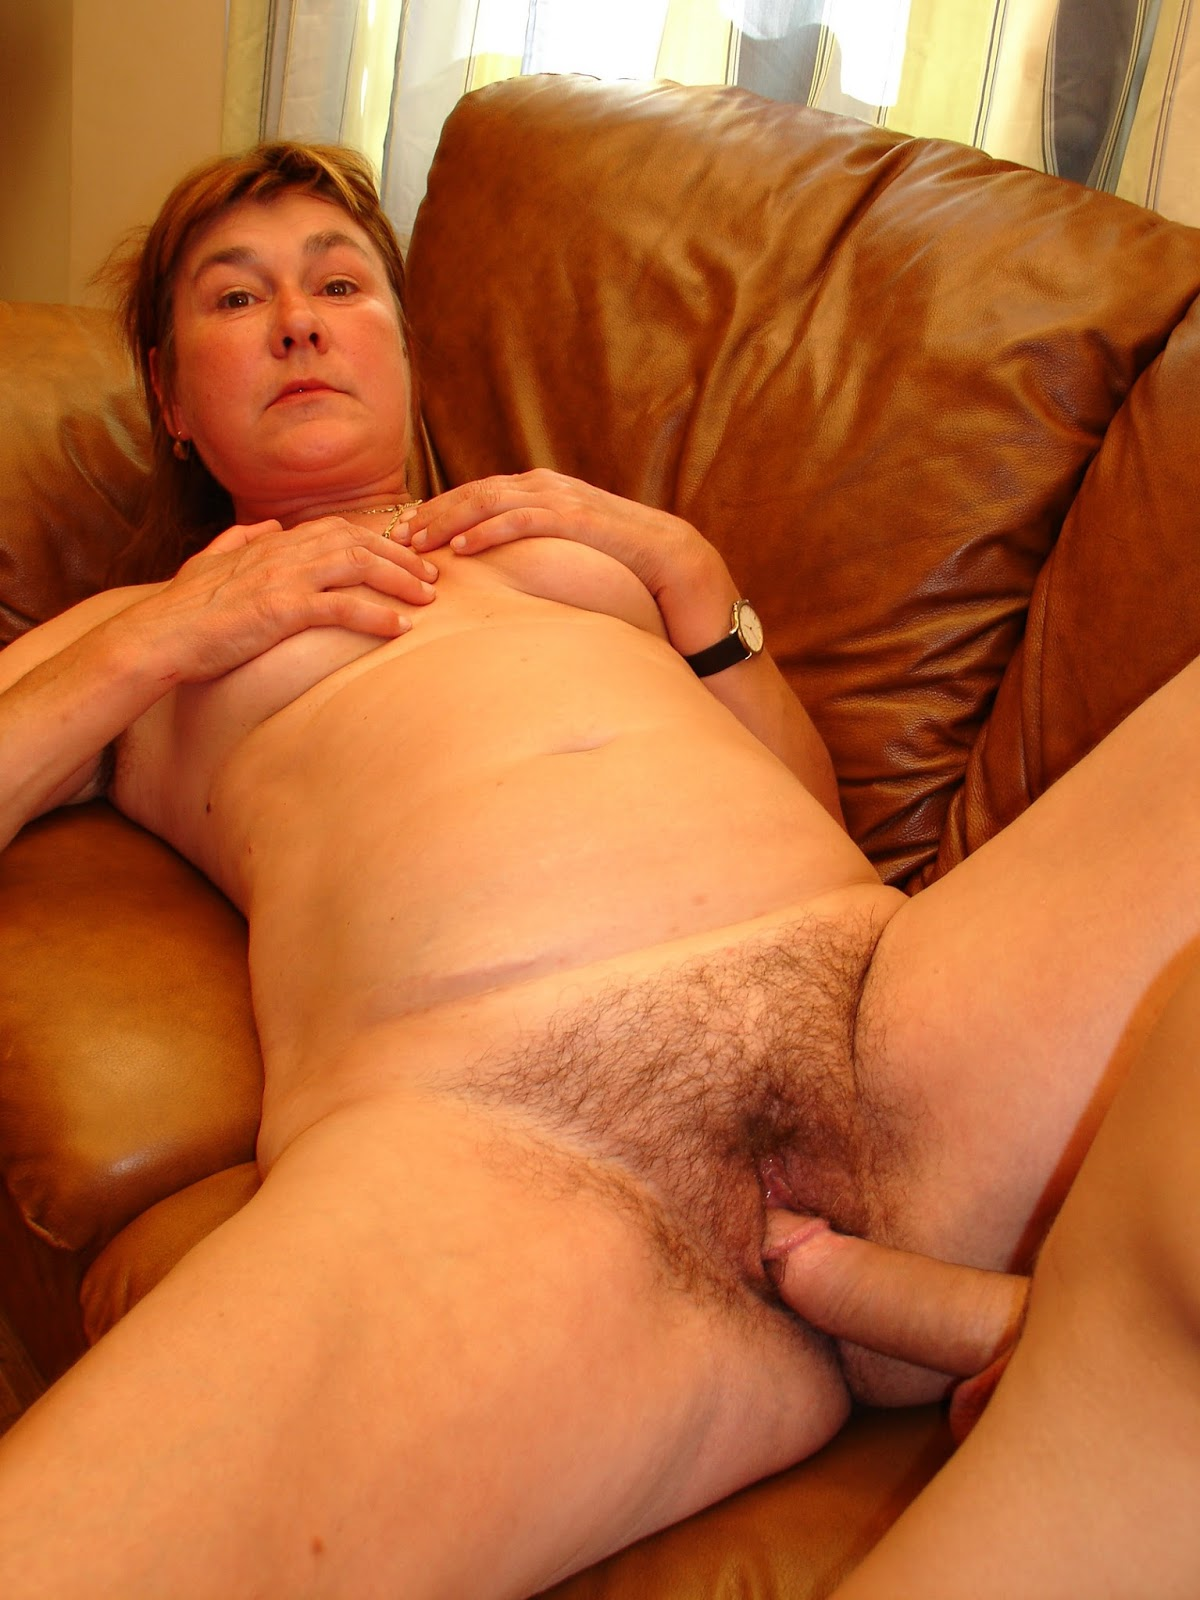 Like this blogspot biggranny nude the expert